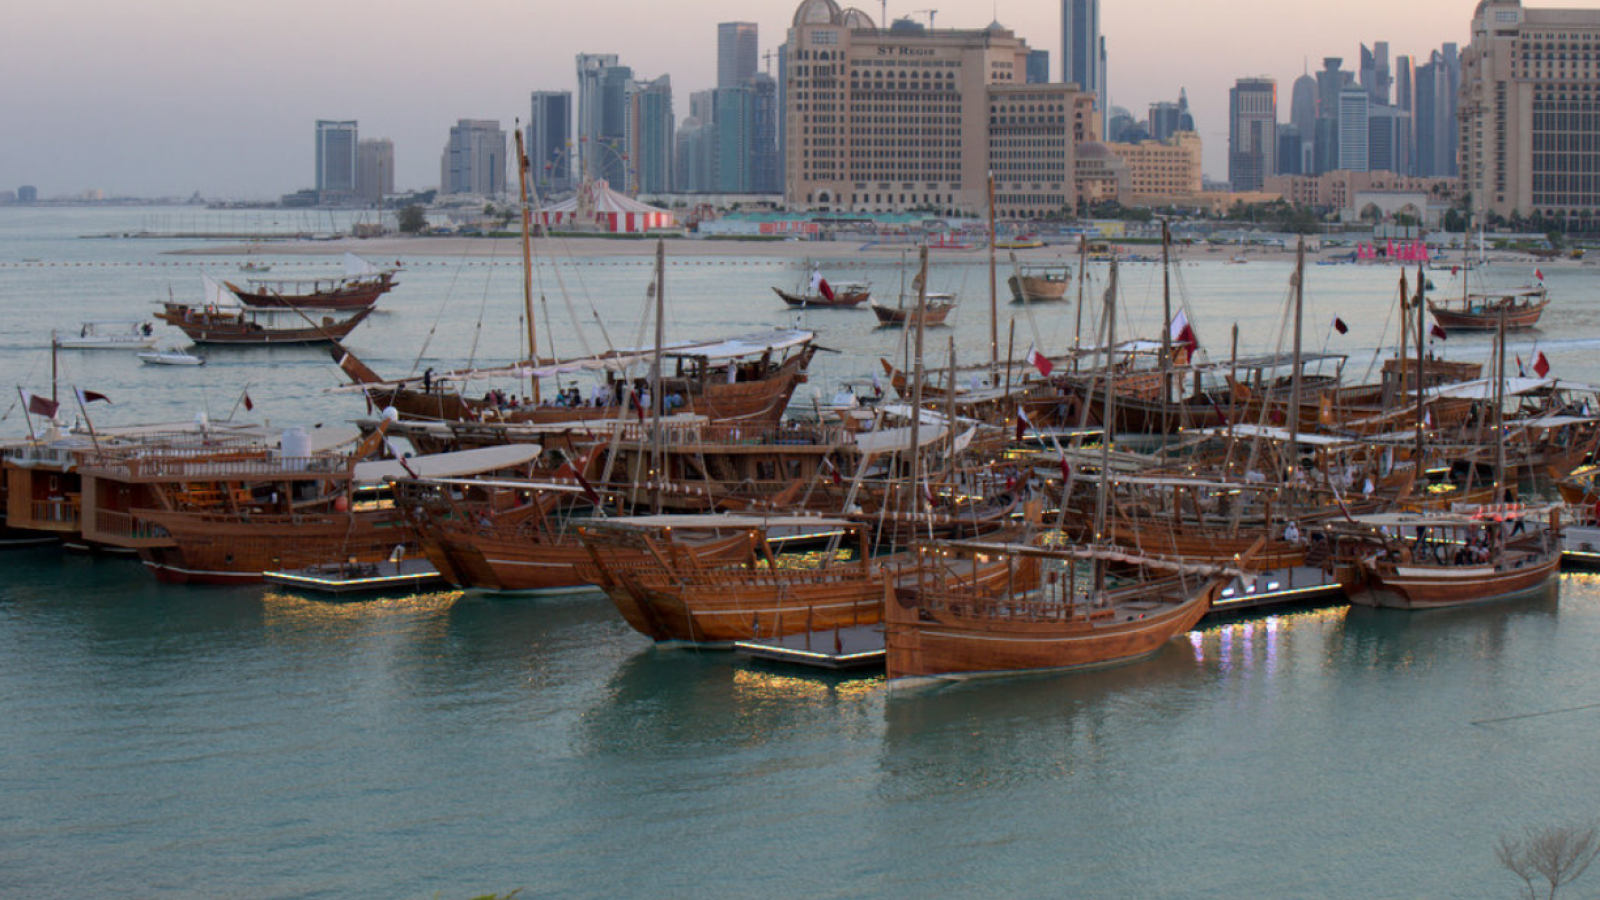 The 9th edition of Katara Traditional Dhow Festival kicks off on December 3